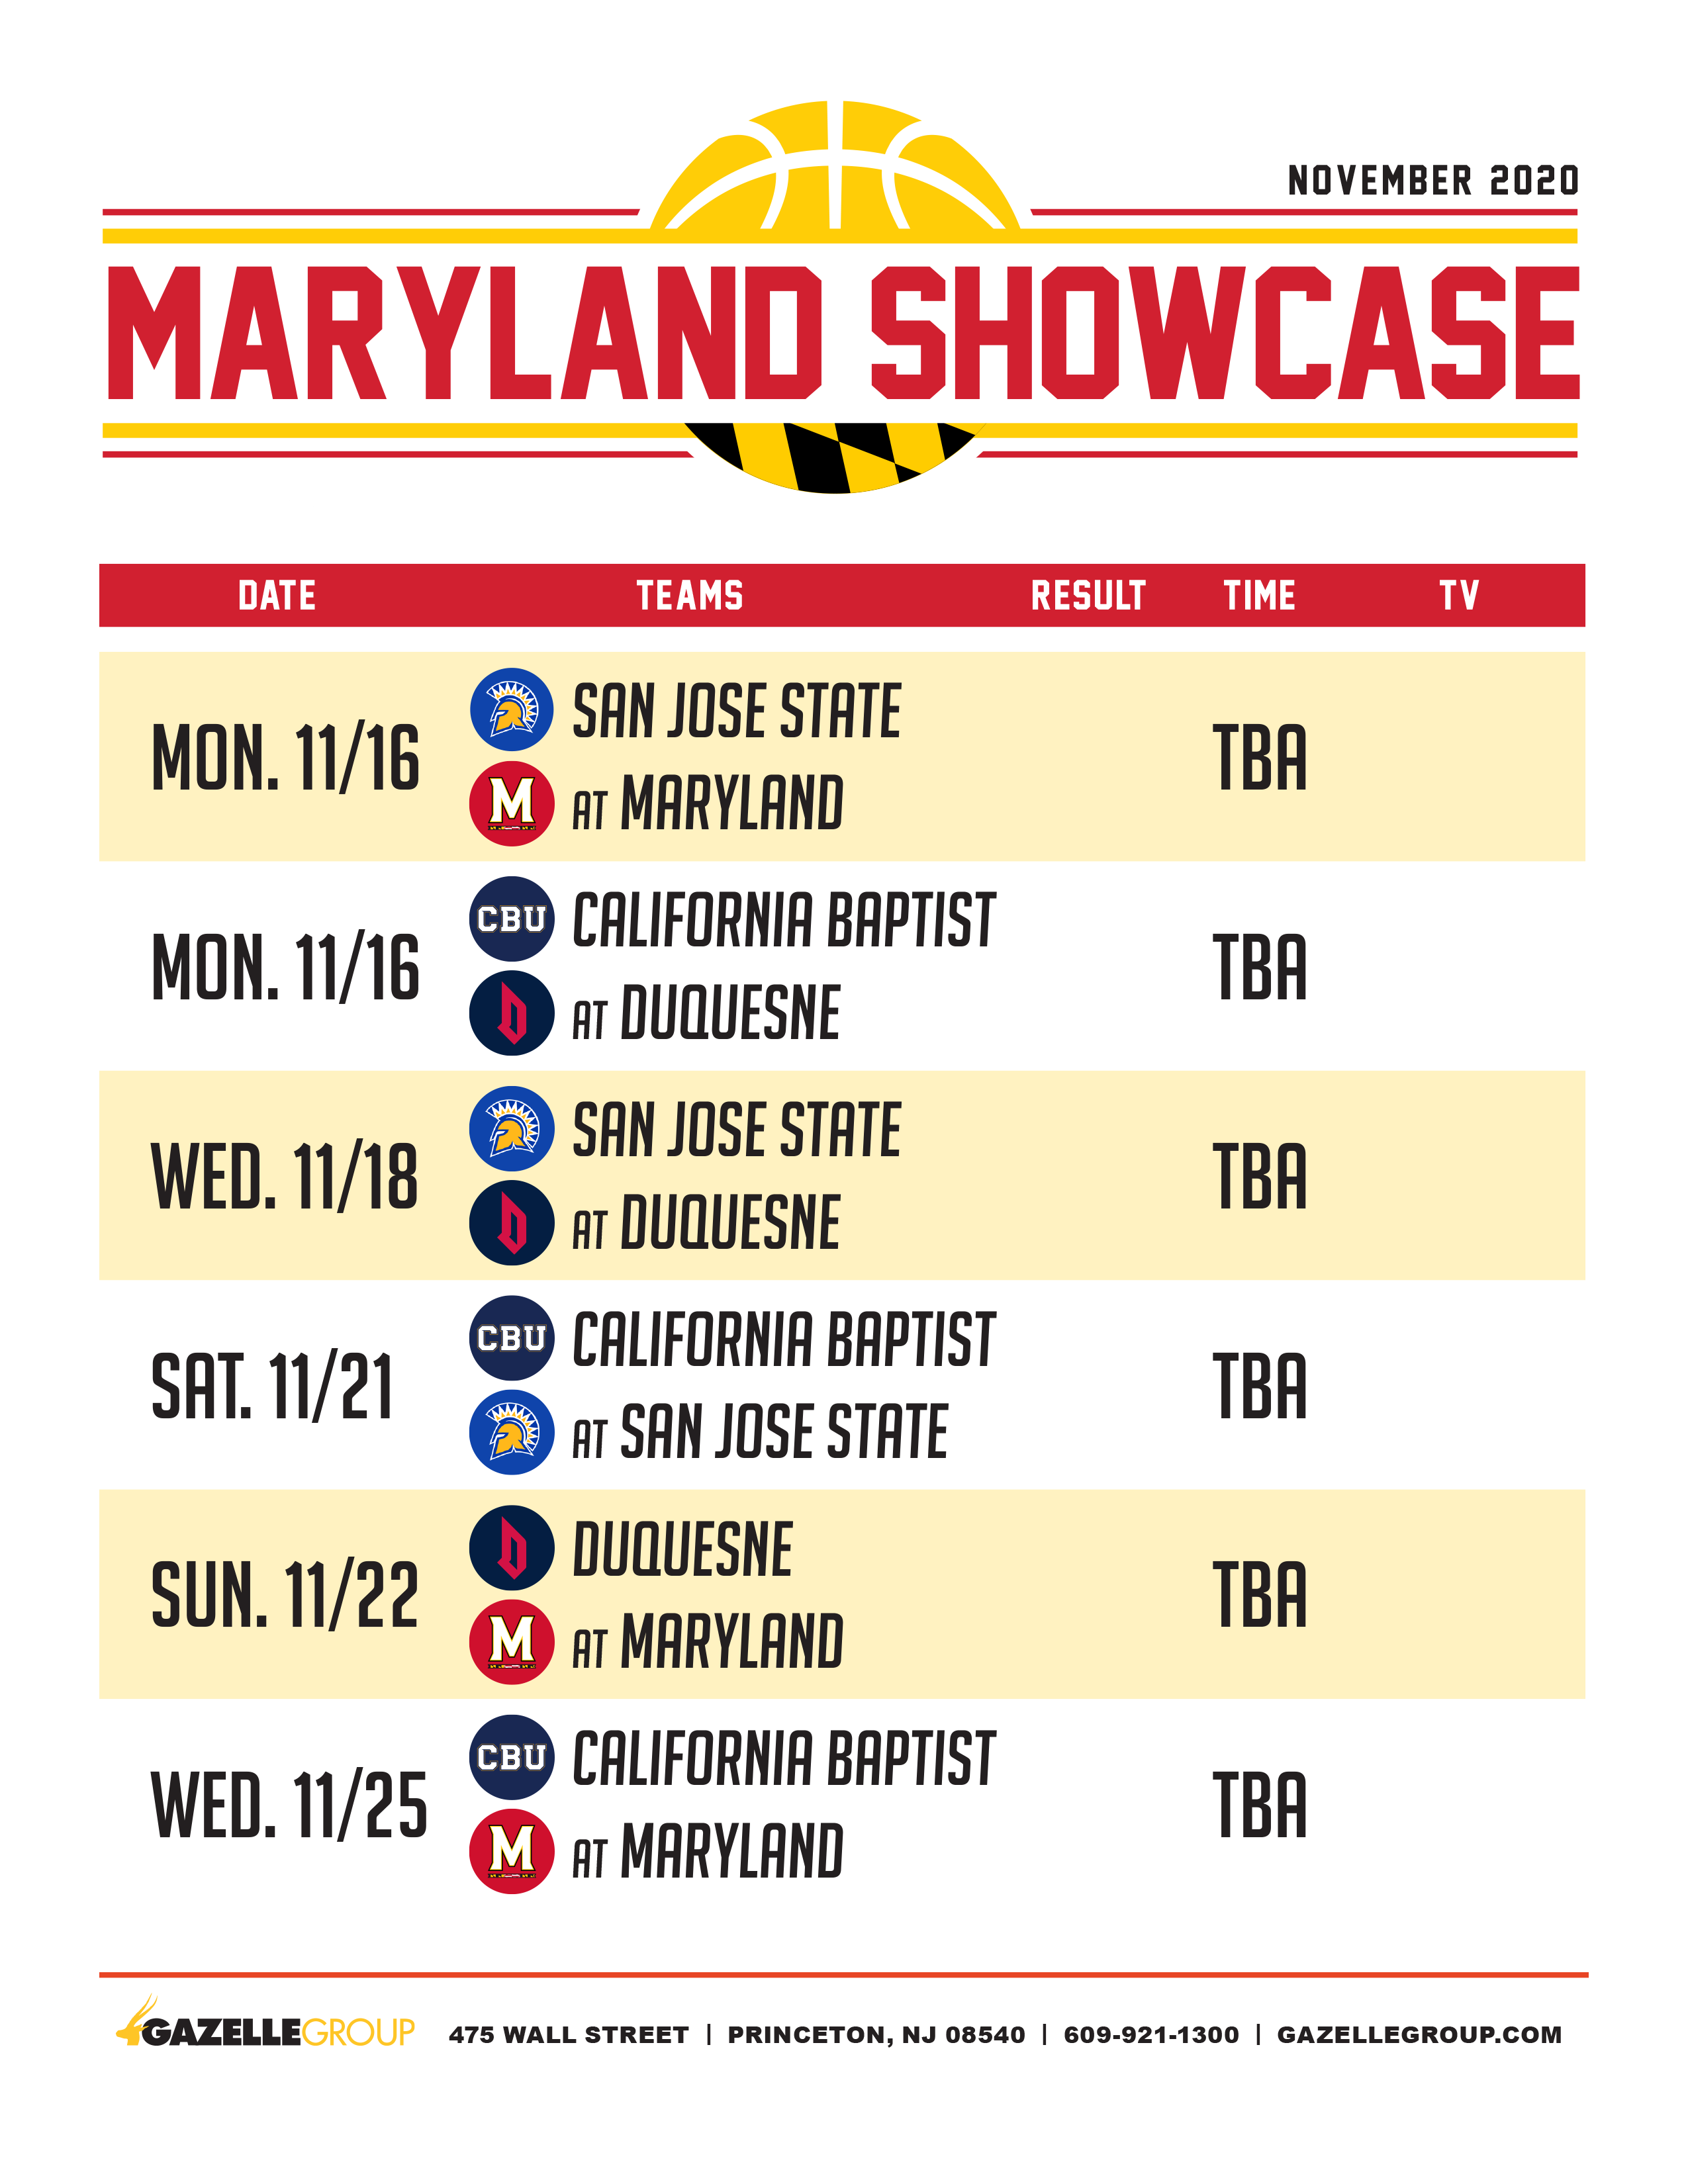 Maryland Showcase Schedule